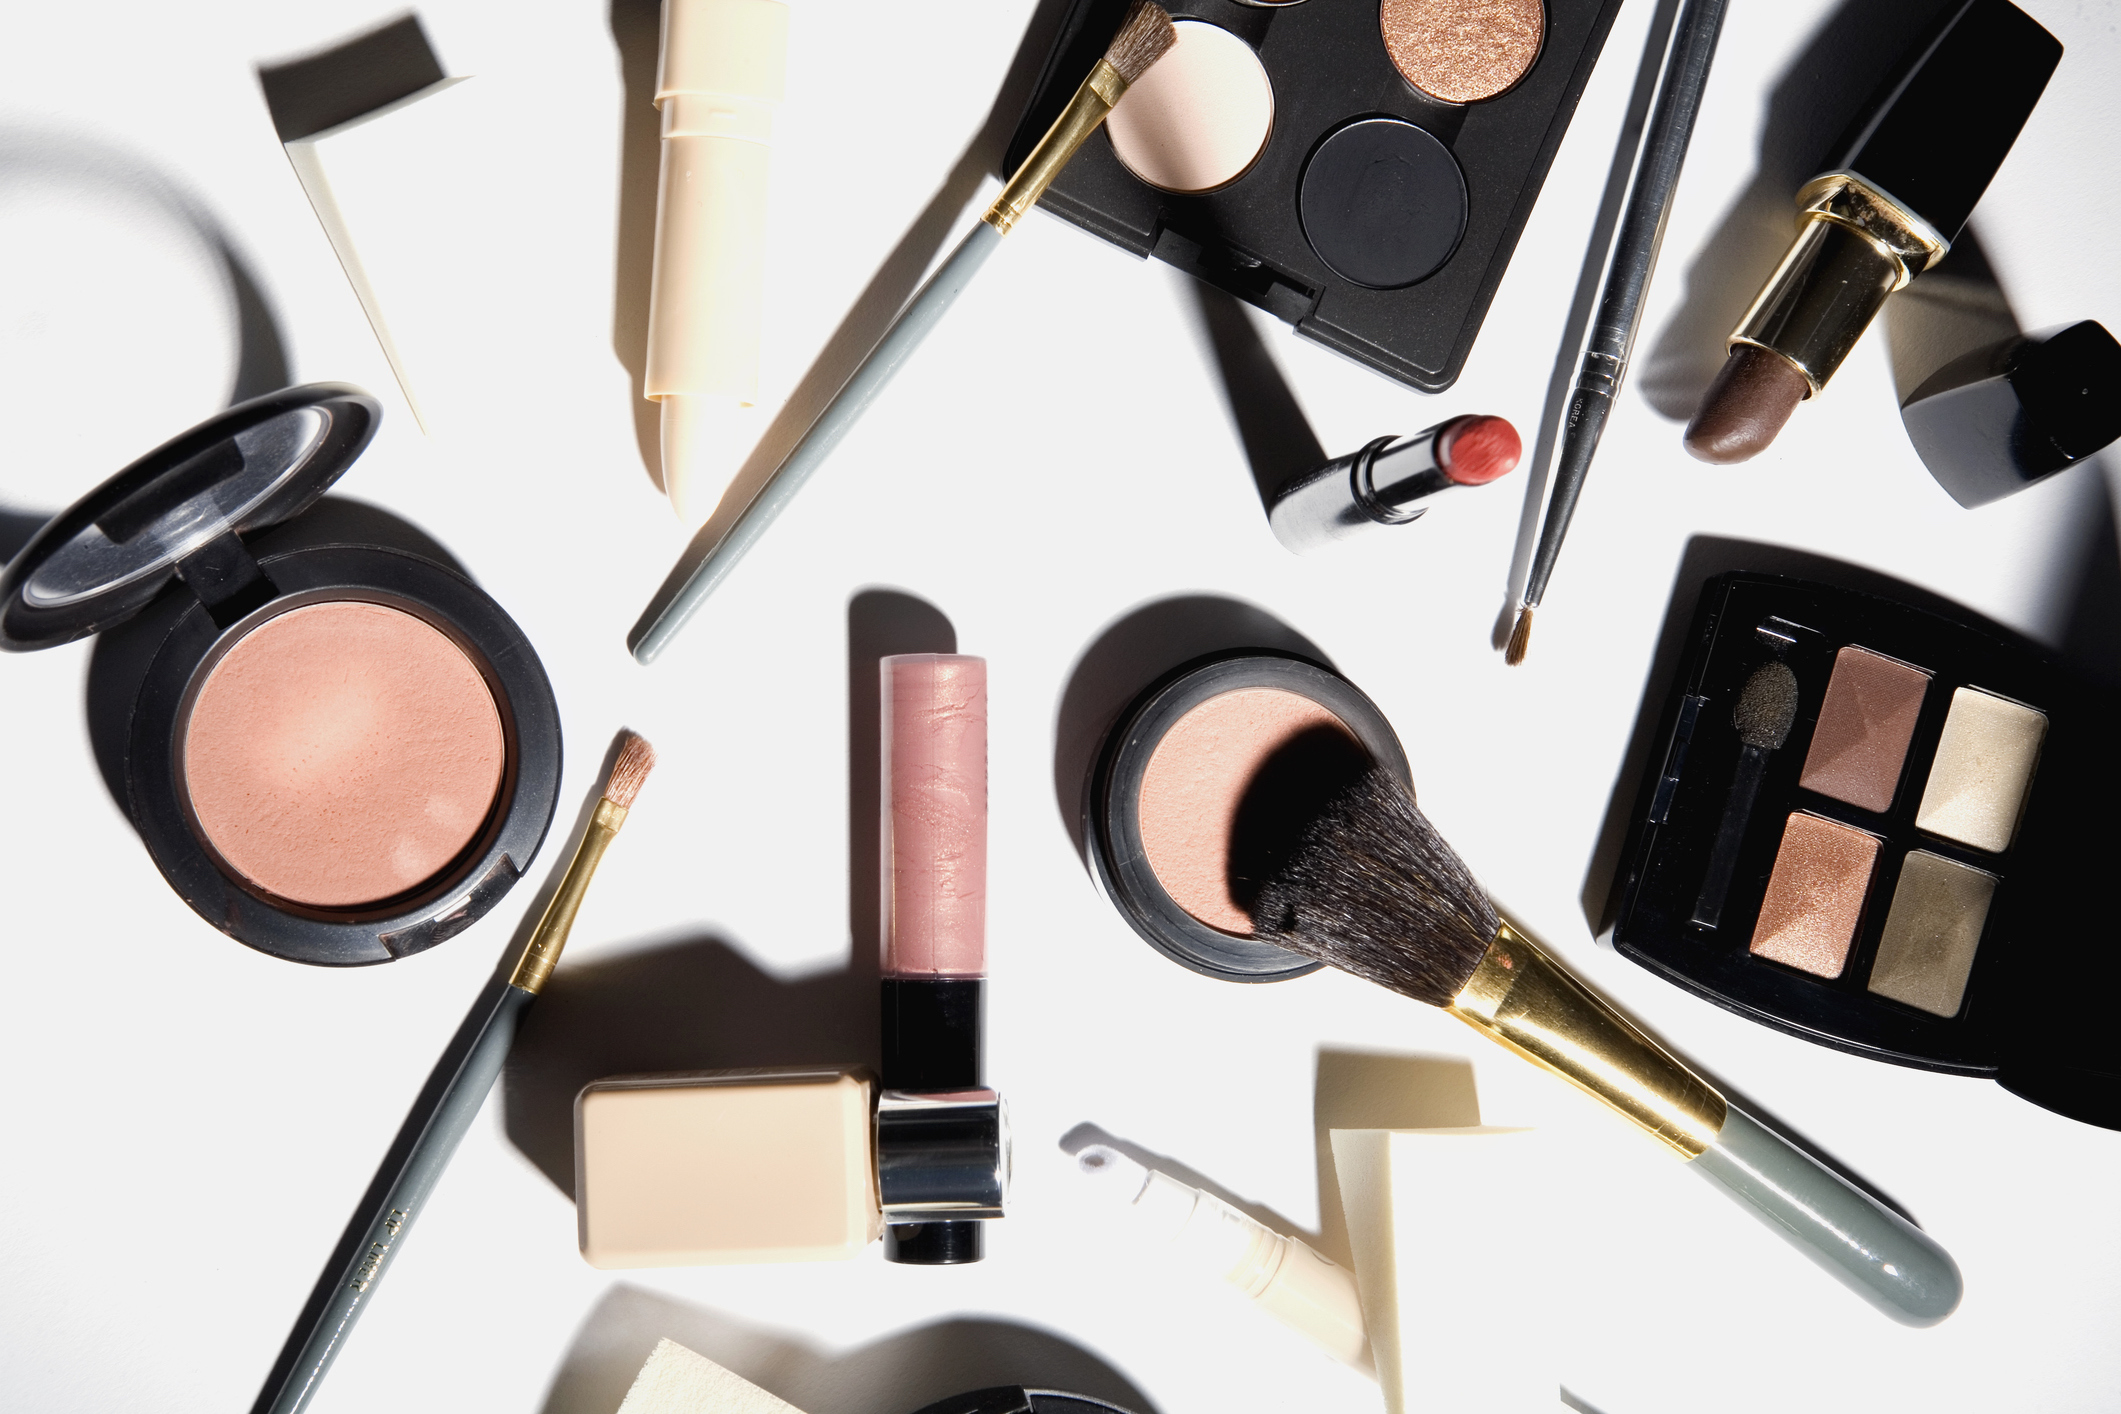 7 skincare and beauty products that I can't live without this summer